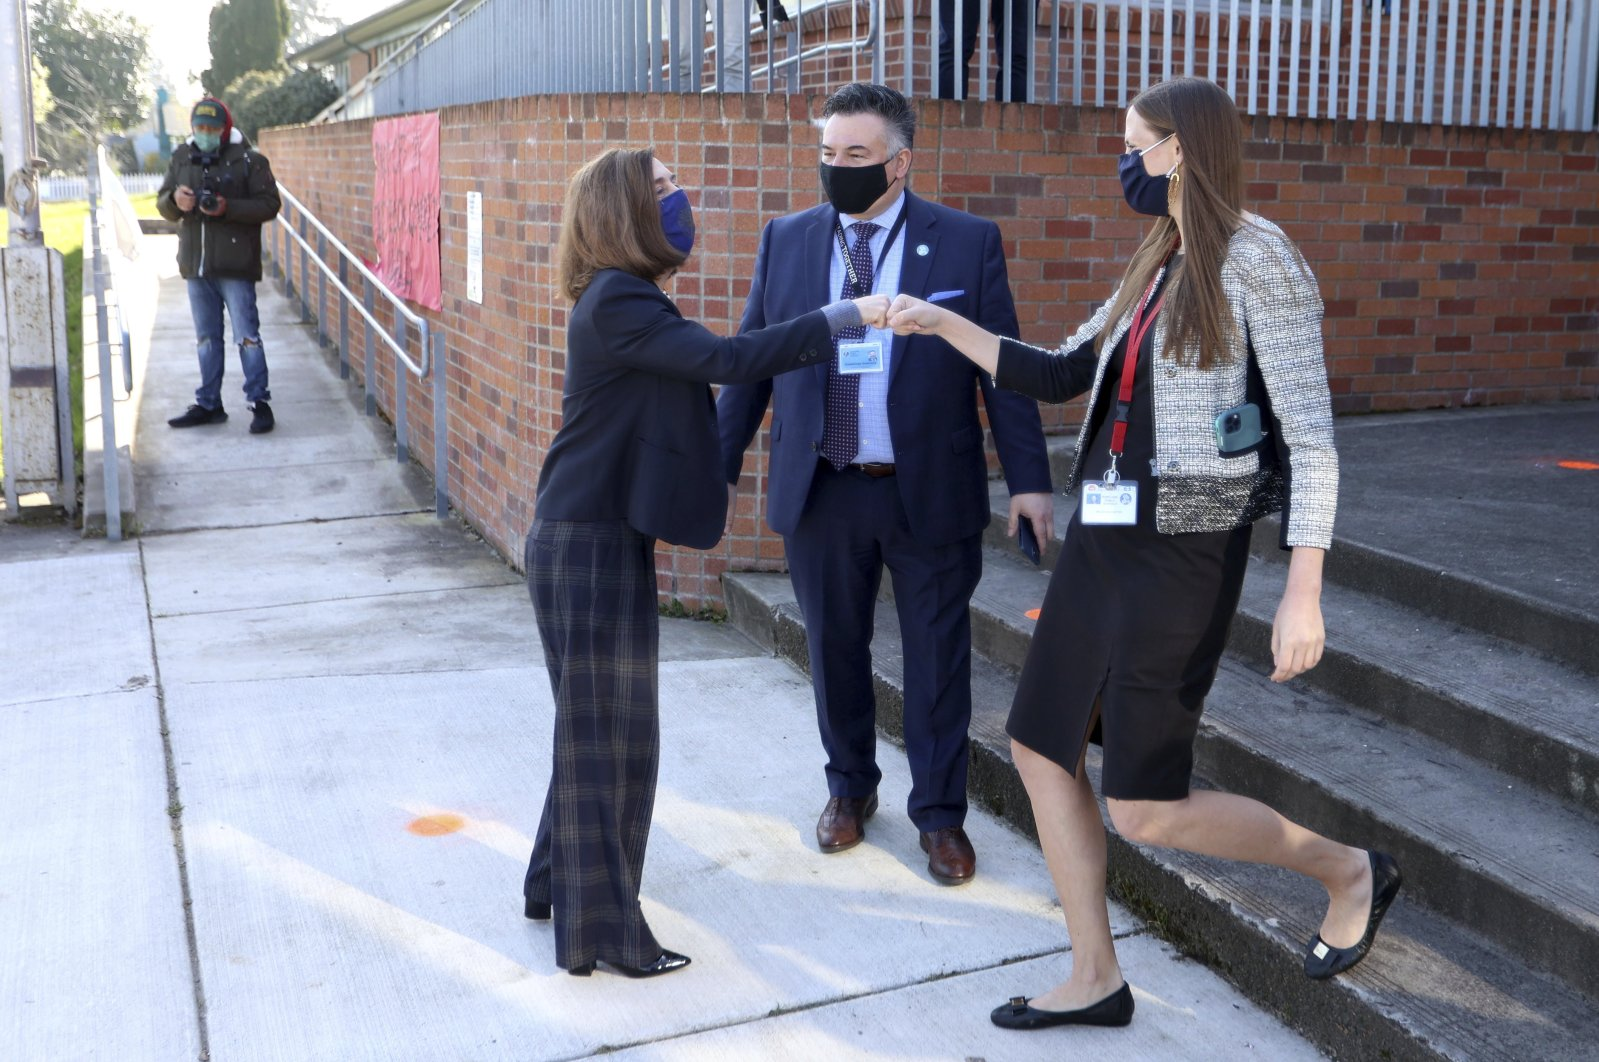 Oregon Governor Kate Brown (L) fist bumps in front of Portland Public Schools Superintendent Guadalupe Guerrero (C) with Scott Elementary School principal Megan McCarter (R) and on the first day of hybrid instruction at Scott Elementary School, Portland, Oregon, the U.S., April 1, 2021. (AP Photo)